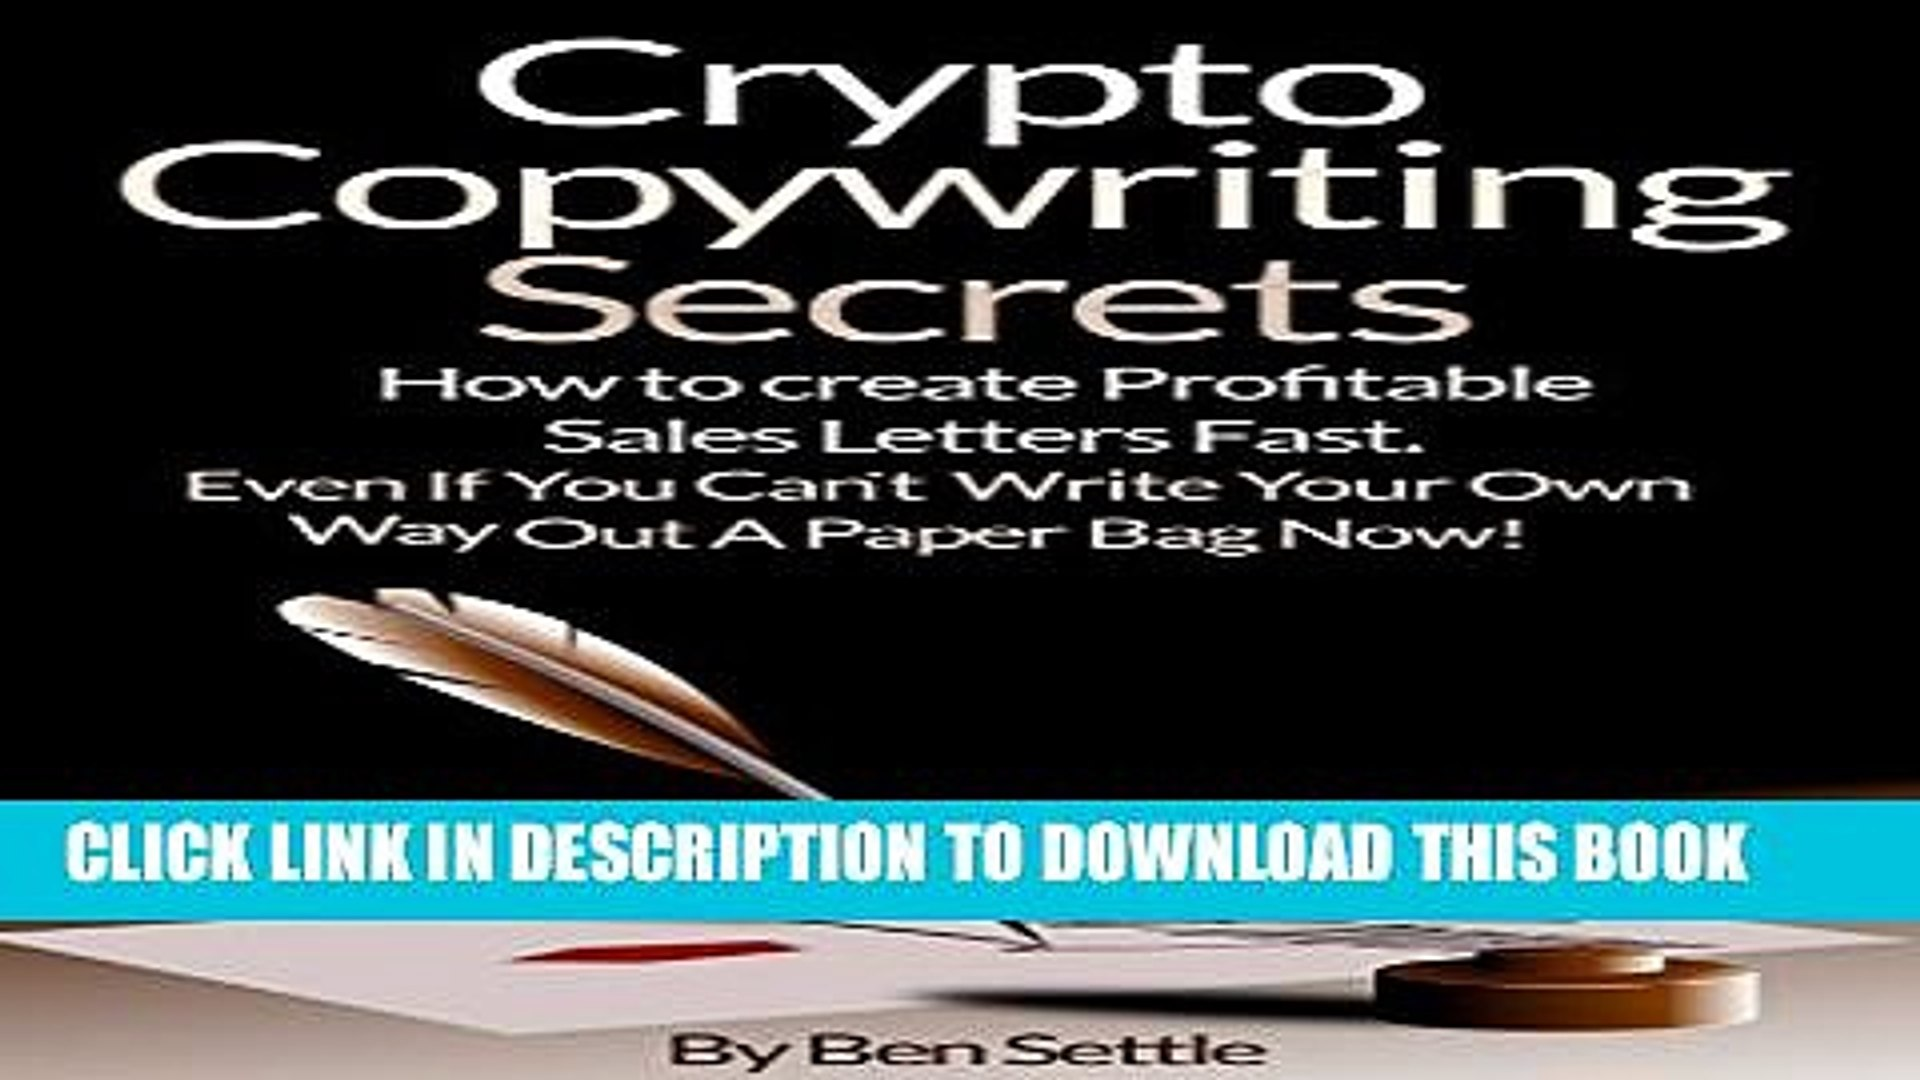 [BOOK] PDF Crypto Copywriting Secrets - How to create profitable sales letters fast - even if you